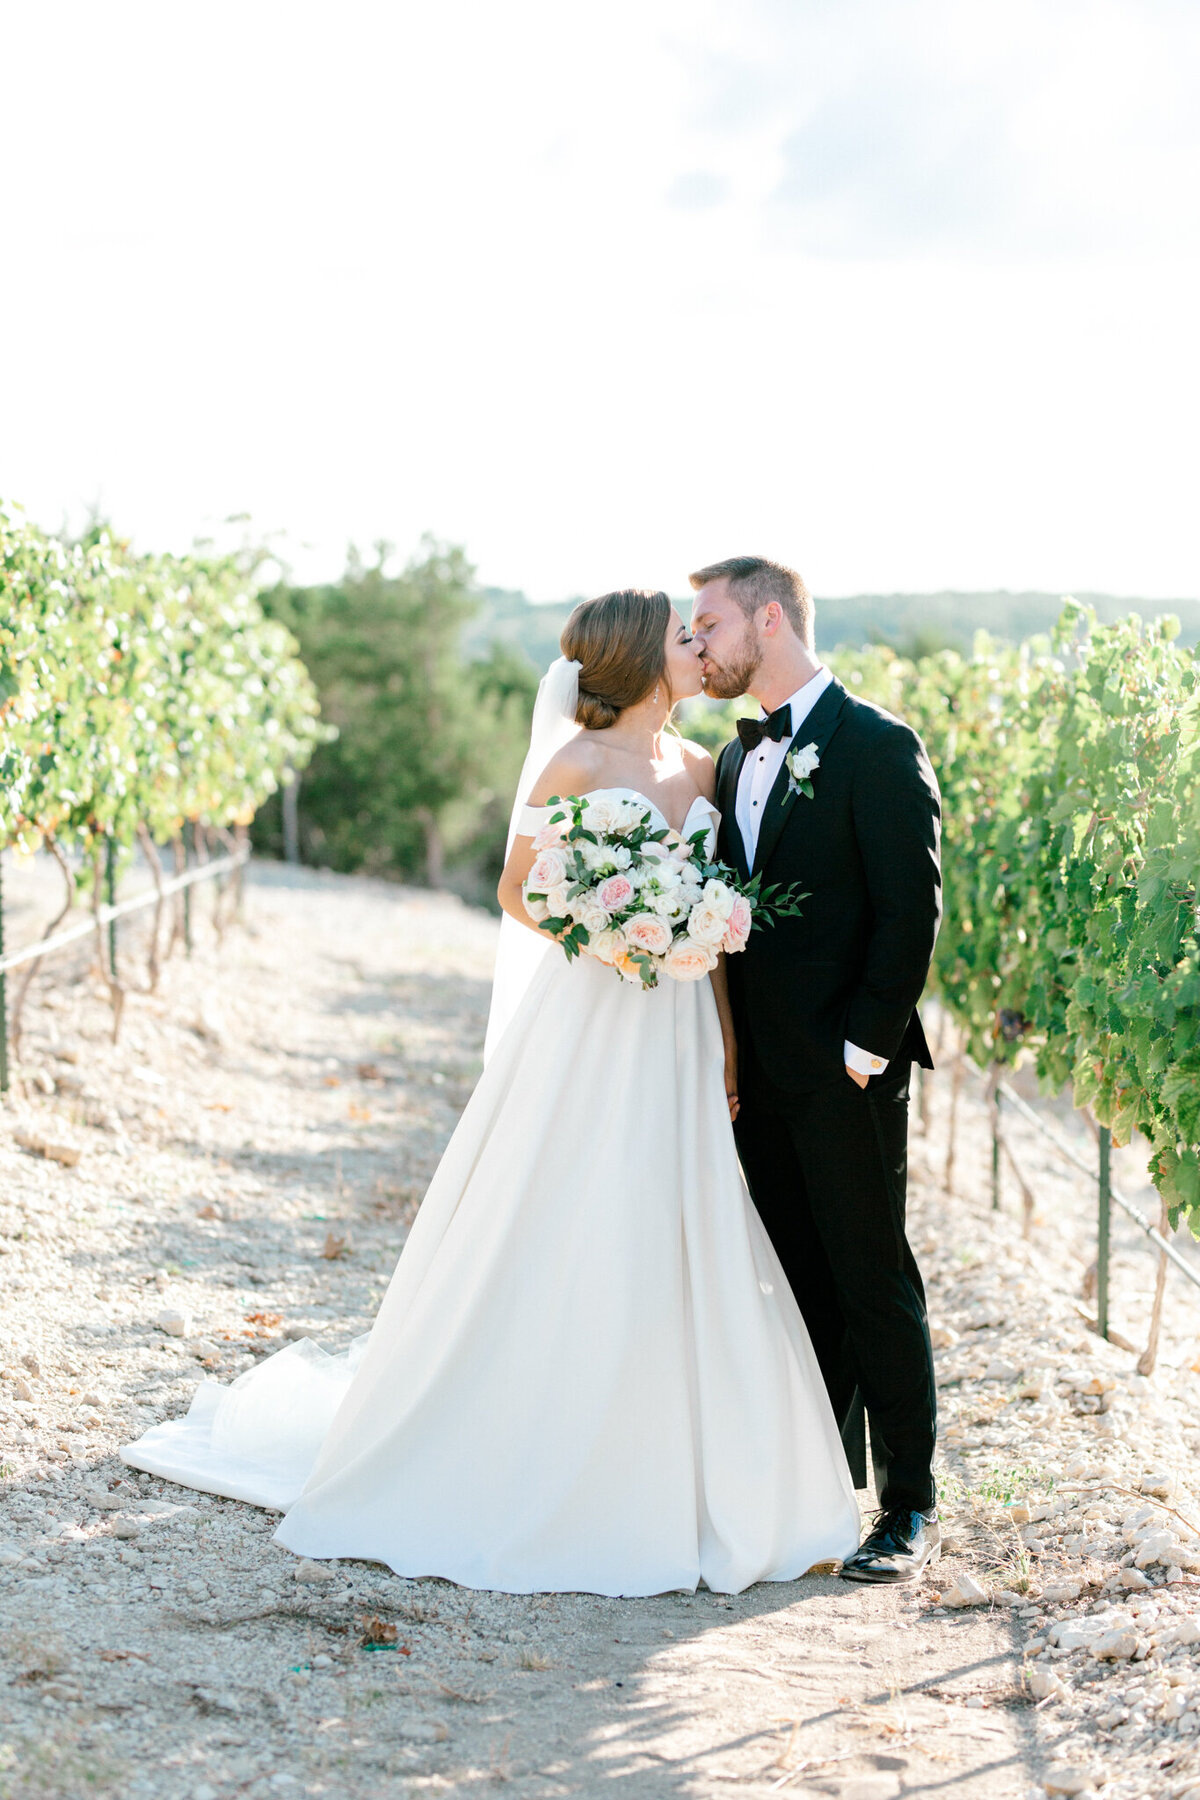 Lexi Broughton & Garrett Greer Wedding at Dove Ridge Vineyards | Sami Kathryn Photography | Dallas Wedding Photography-130